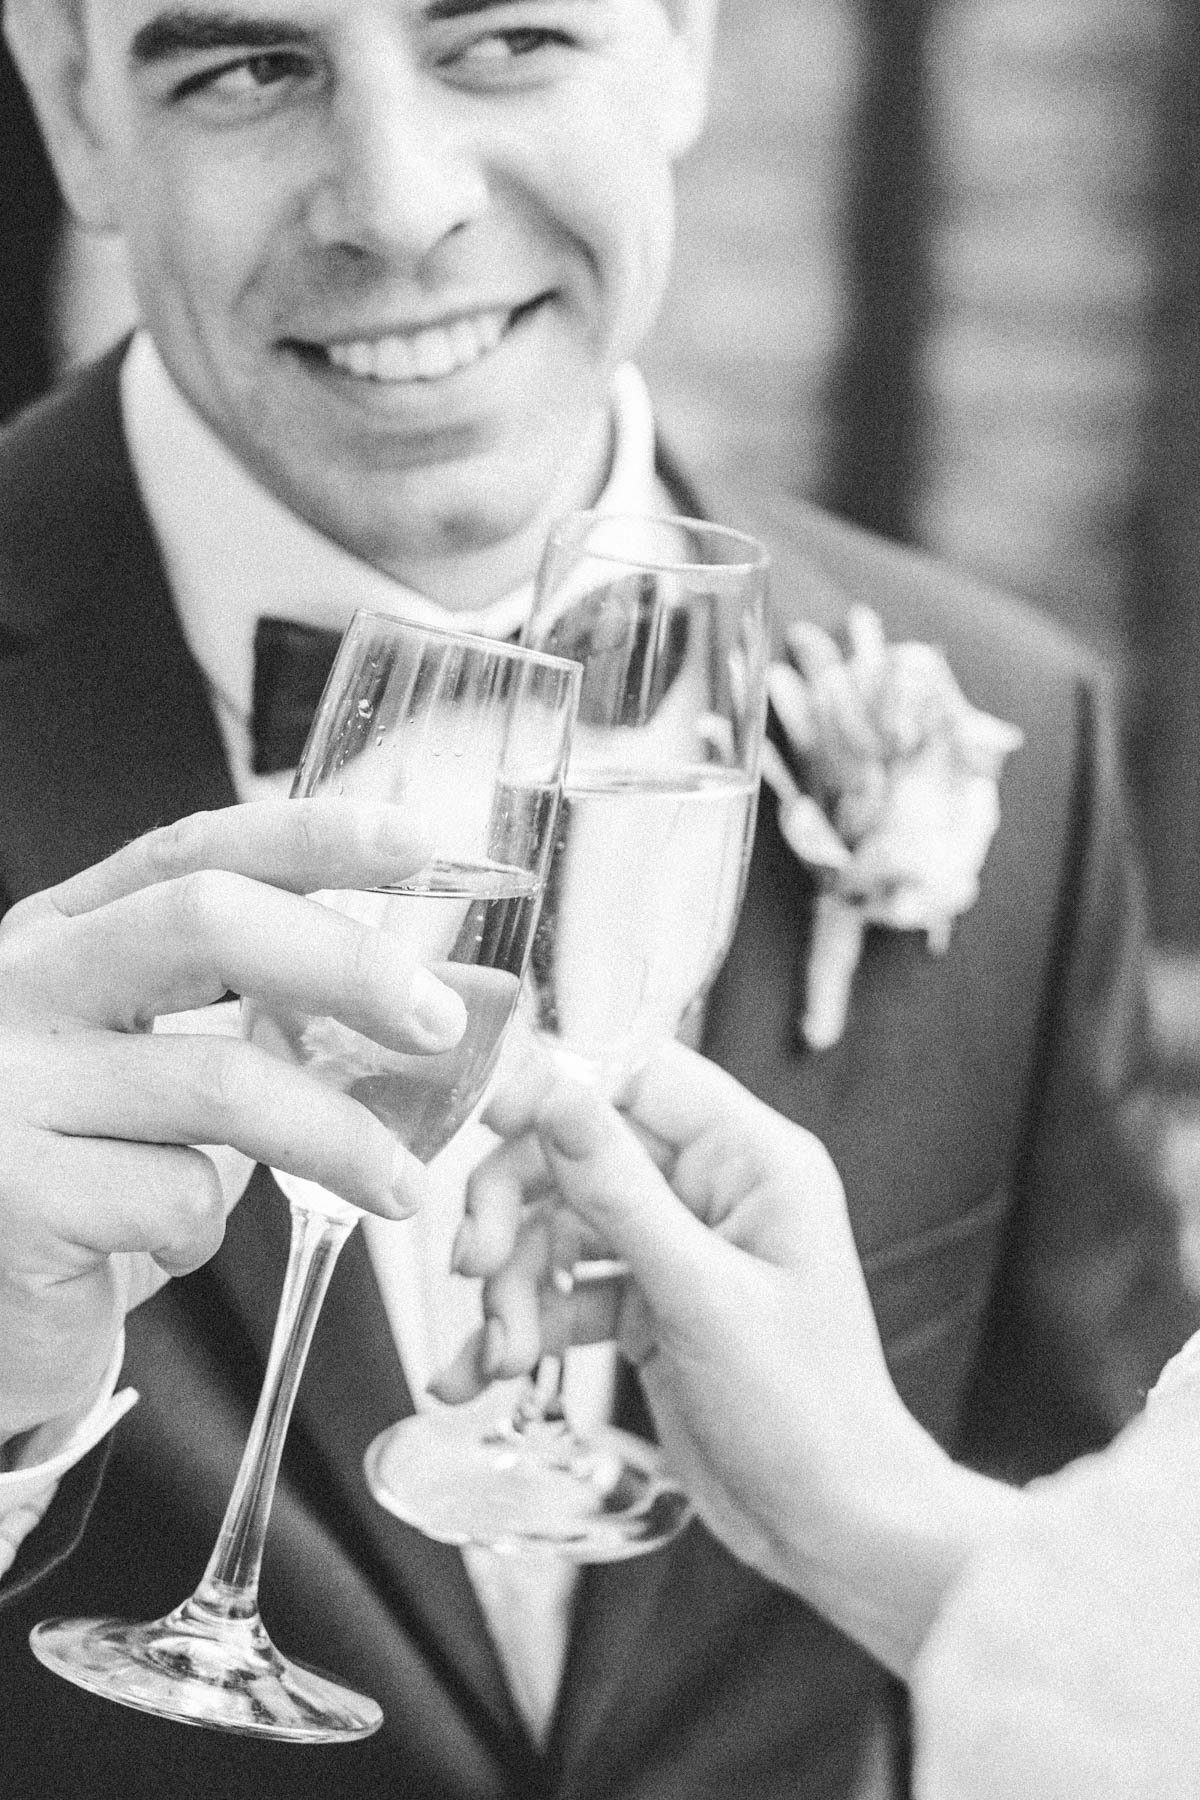 bride and groom toast champagne after wedding ceremony rochester minnesota